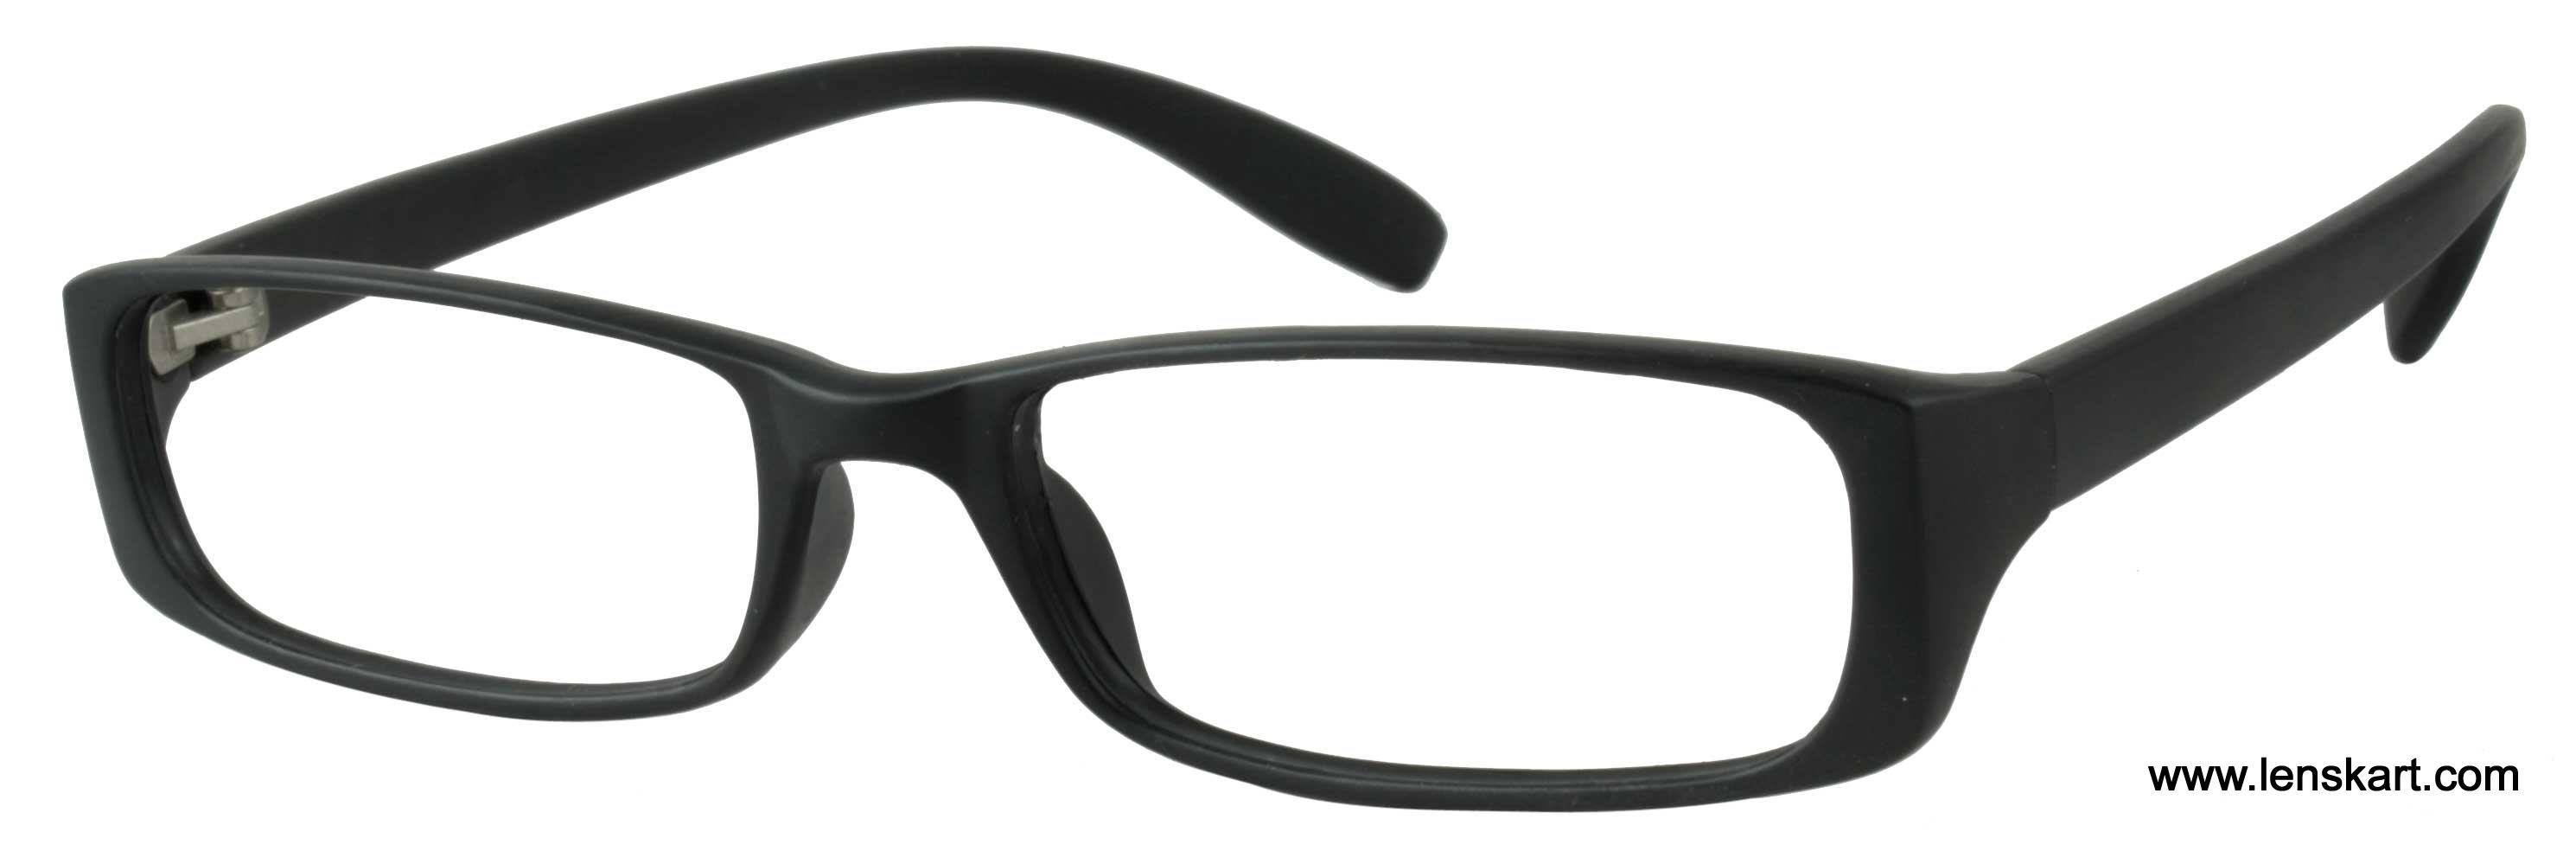 Half Frame Glasses Lenskart : LensKart Optima A904 Black Eyeglasses at LensKart.com @ Rs.399